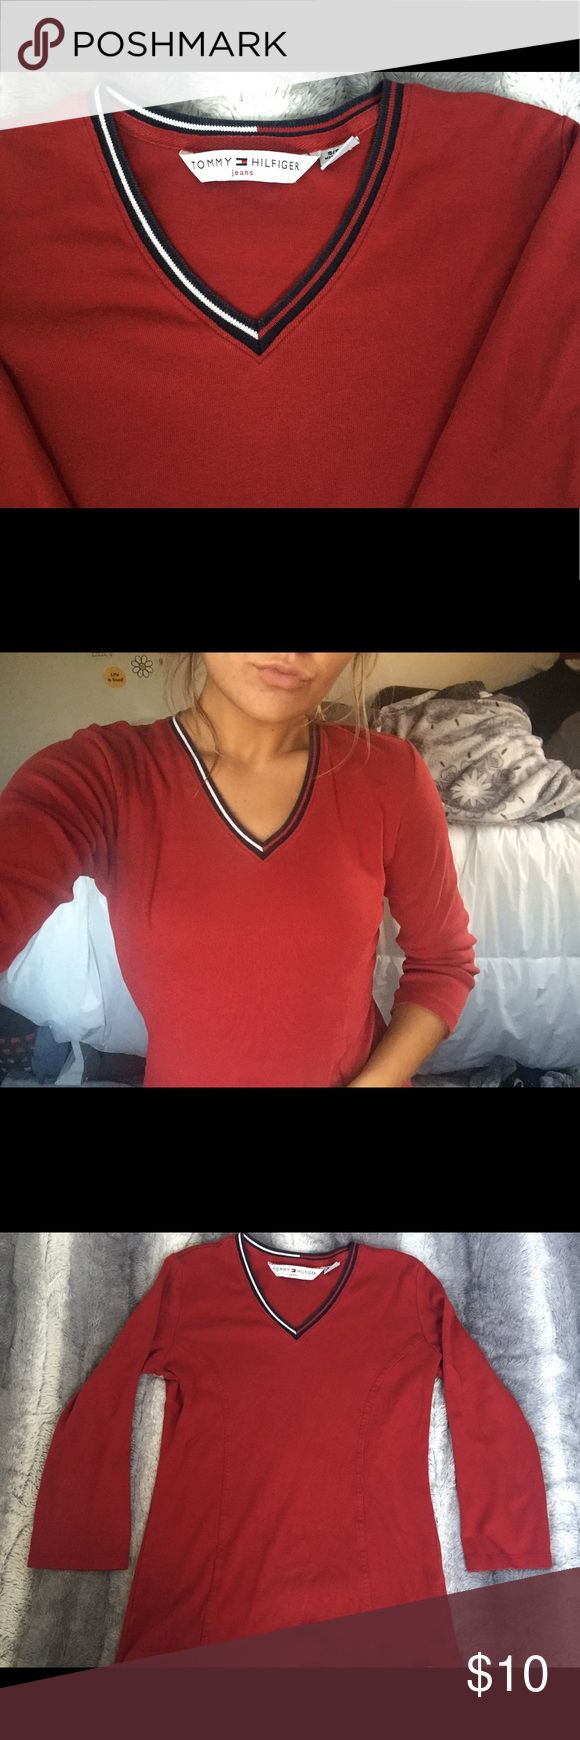 🔴 Red Tommy Hilfiger Shirt 🔴 Love this shirt! Super flattering and comfortable 😊 It is Tommy Hilfiger and is in really good condition. Looks really cute under a vest with a pair of jeans! Perfect for the fall 🍂 Tommy Hilfiger Tops Tees - Long Sleeve